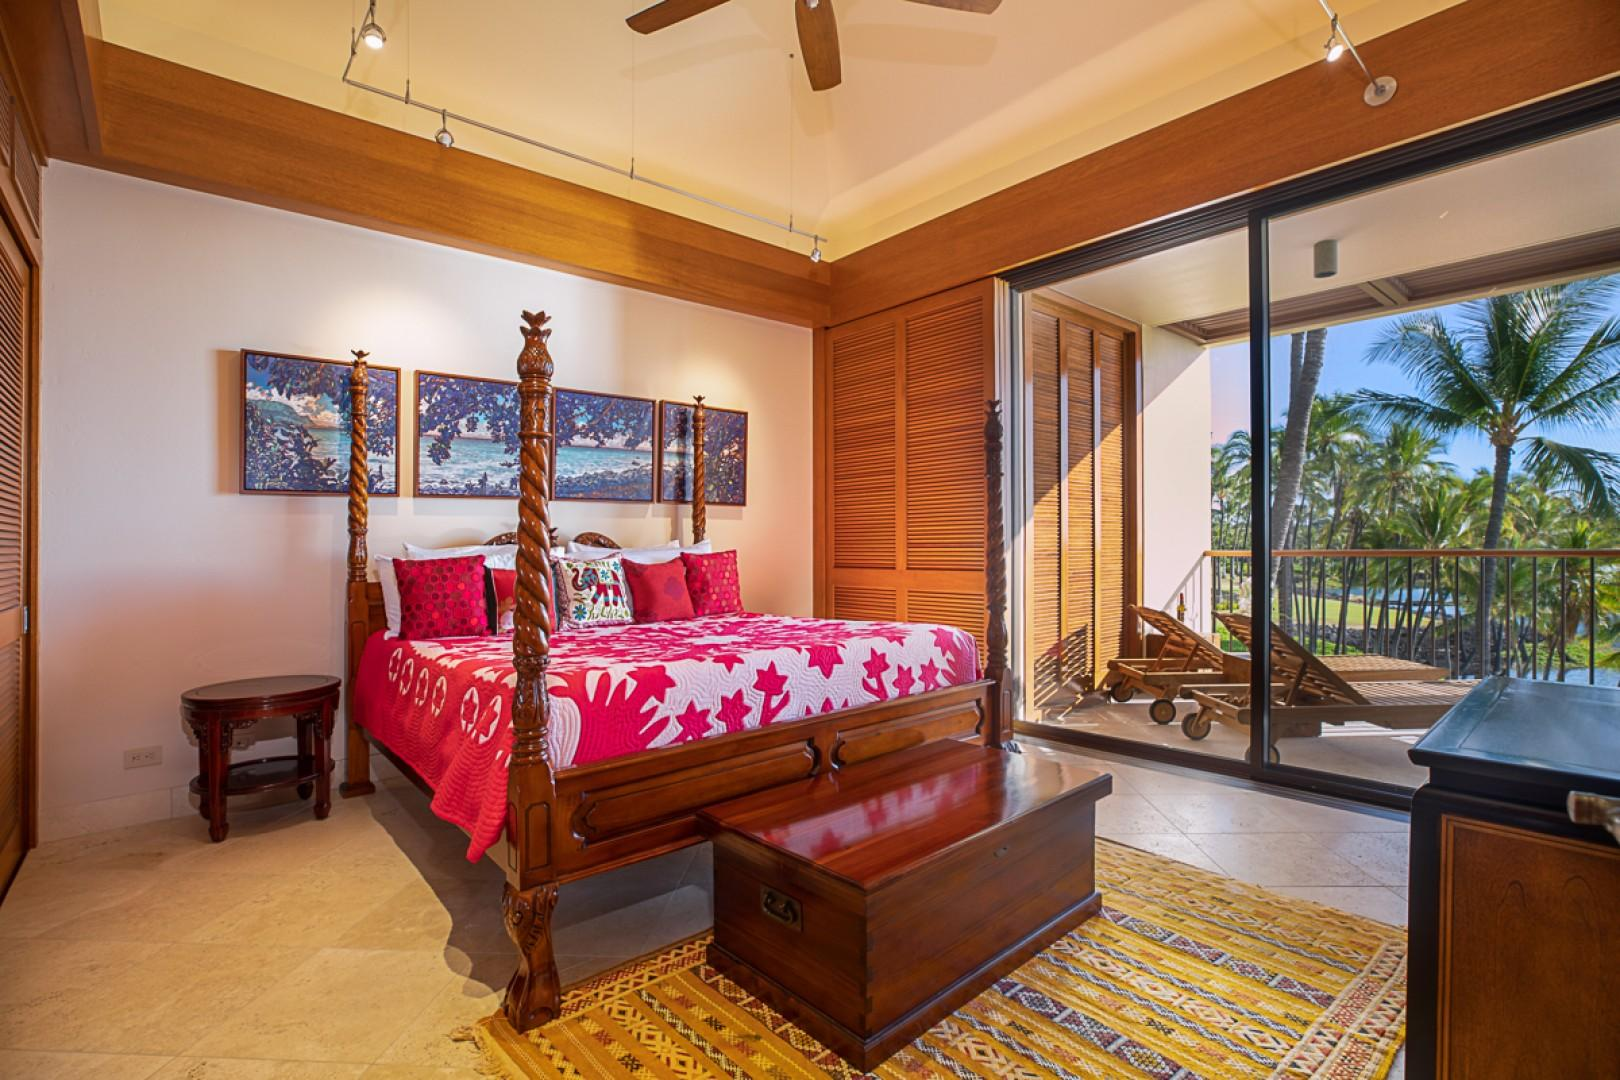 Spacious Master Bedroom with Lanai Access